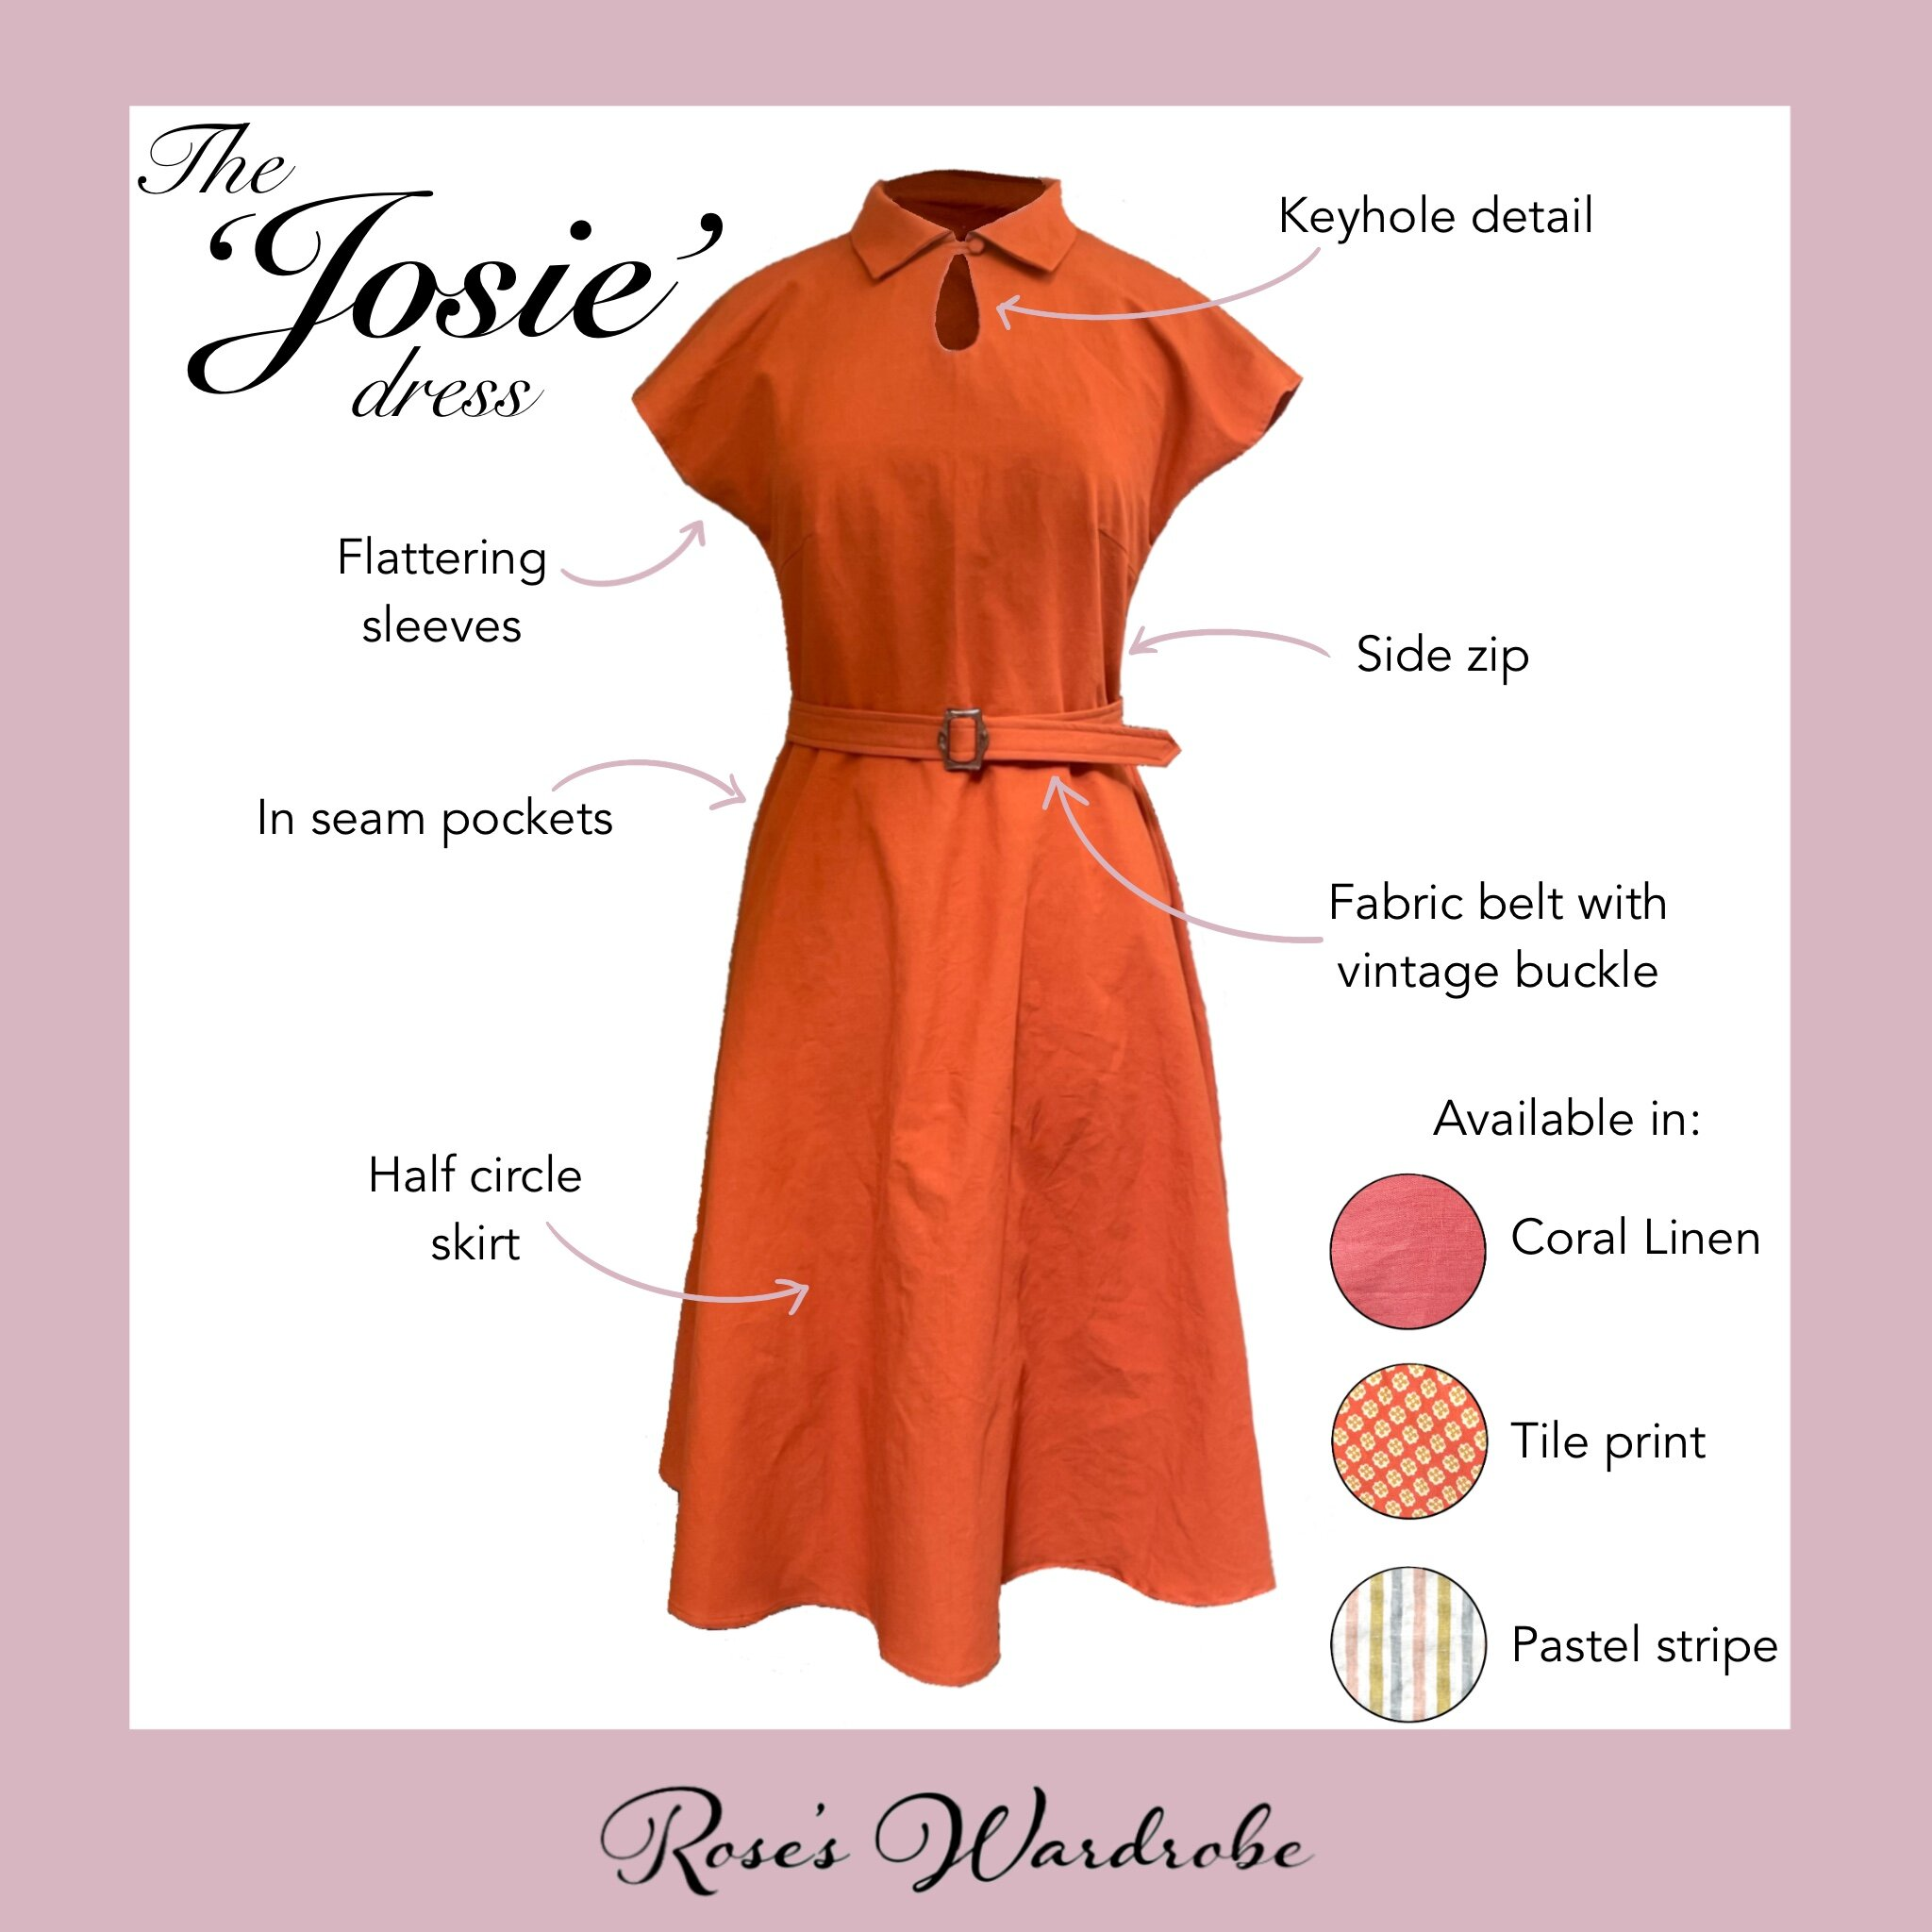 The details of the 'Josie' dress